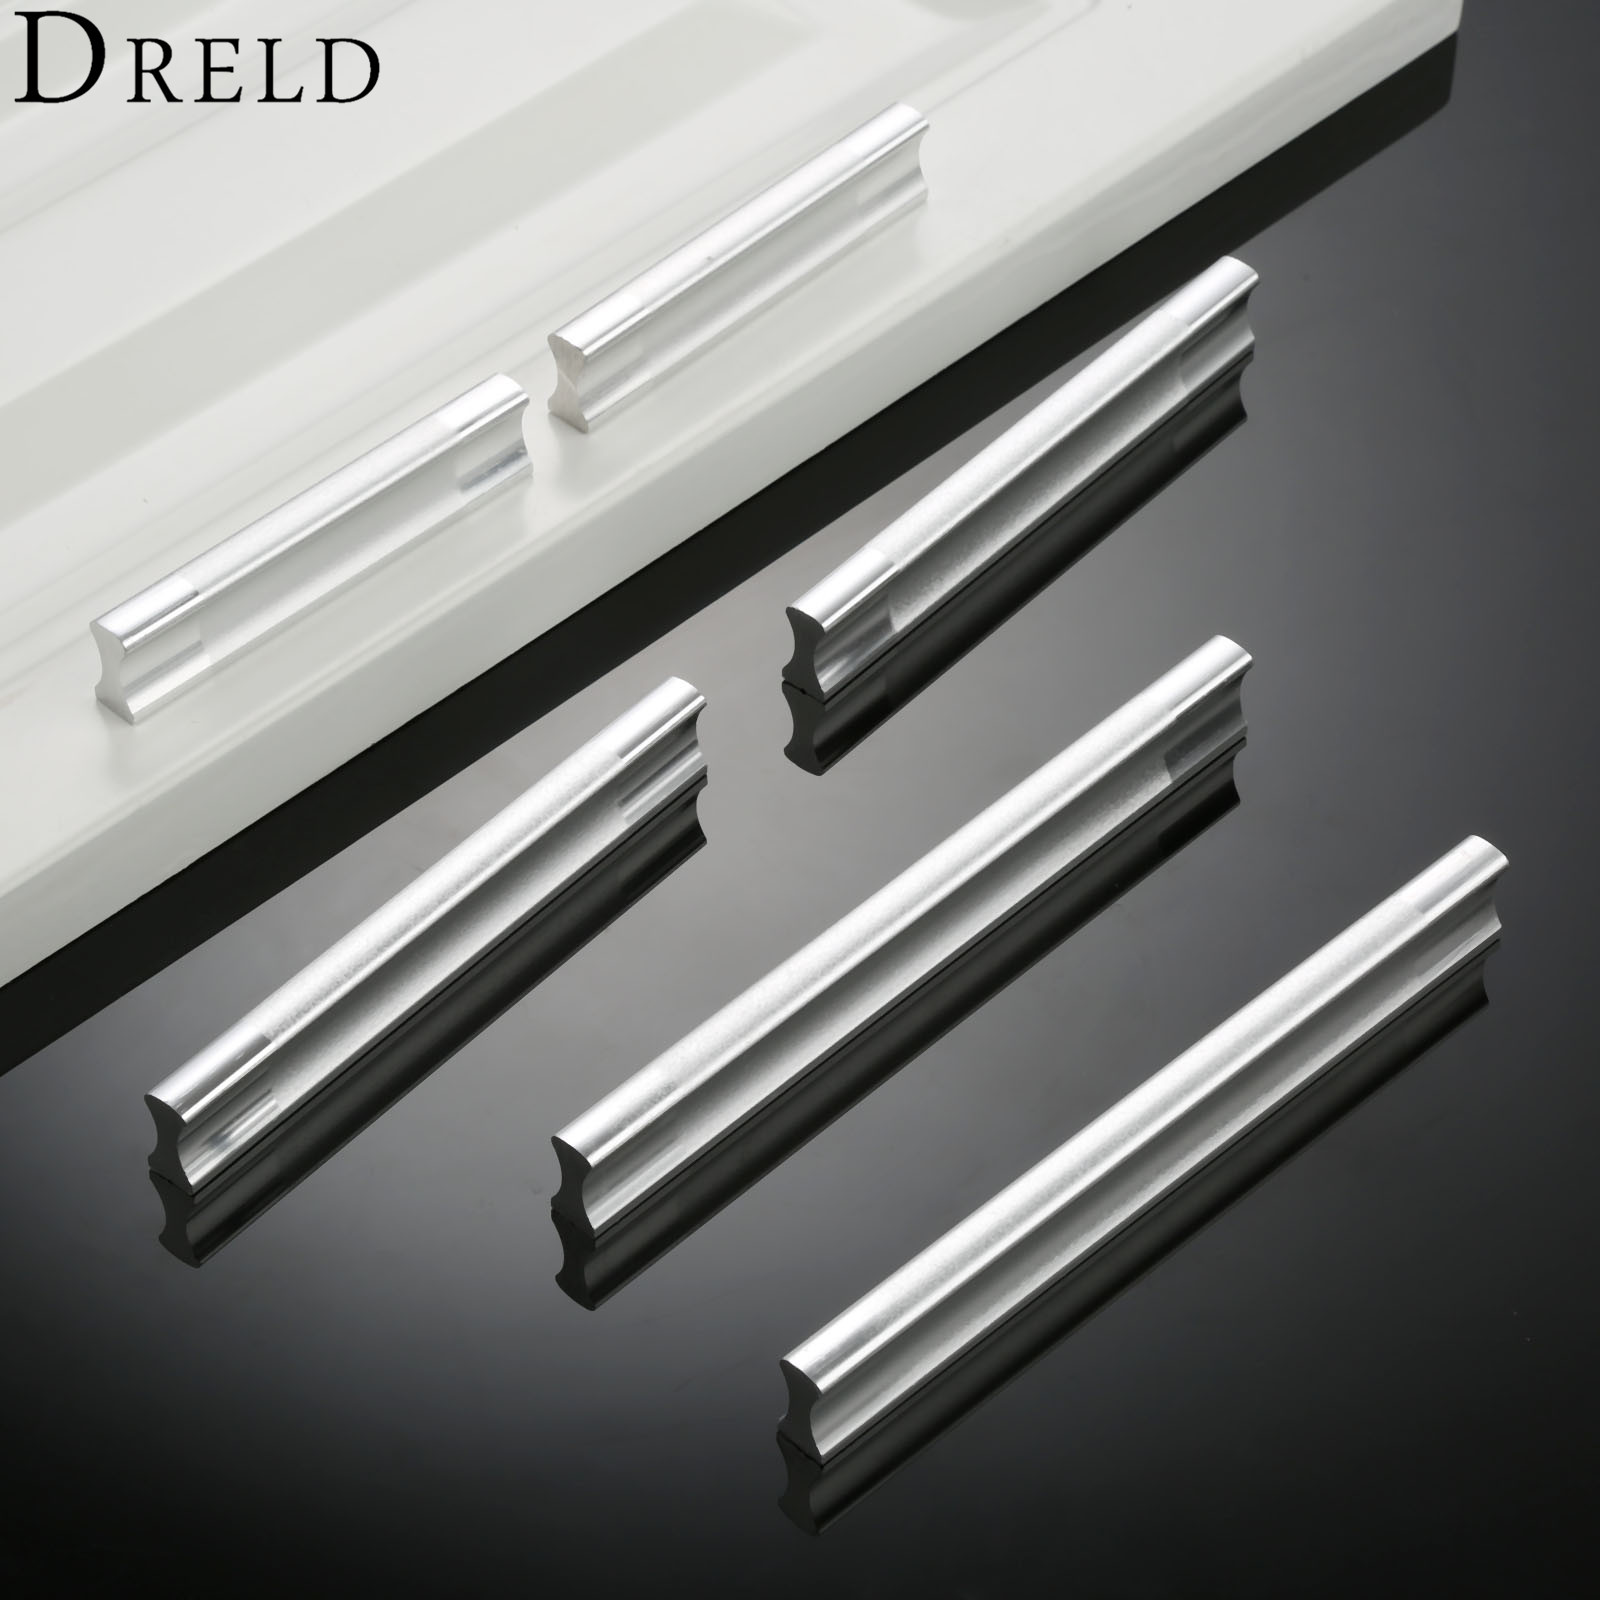 DRELD Aluminum Door Handle Kitchen Dresser Handles Cabinet Wardrobe Pull Handles Modern Furniture Cupboard Knobs 64/96/128mm antique furniture handles wardrobe door pull dresser drawer handle kitchen cupboard handle cabinet knobs and handles 128mm 160mm